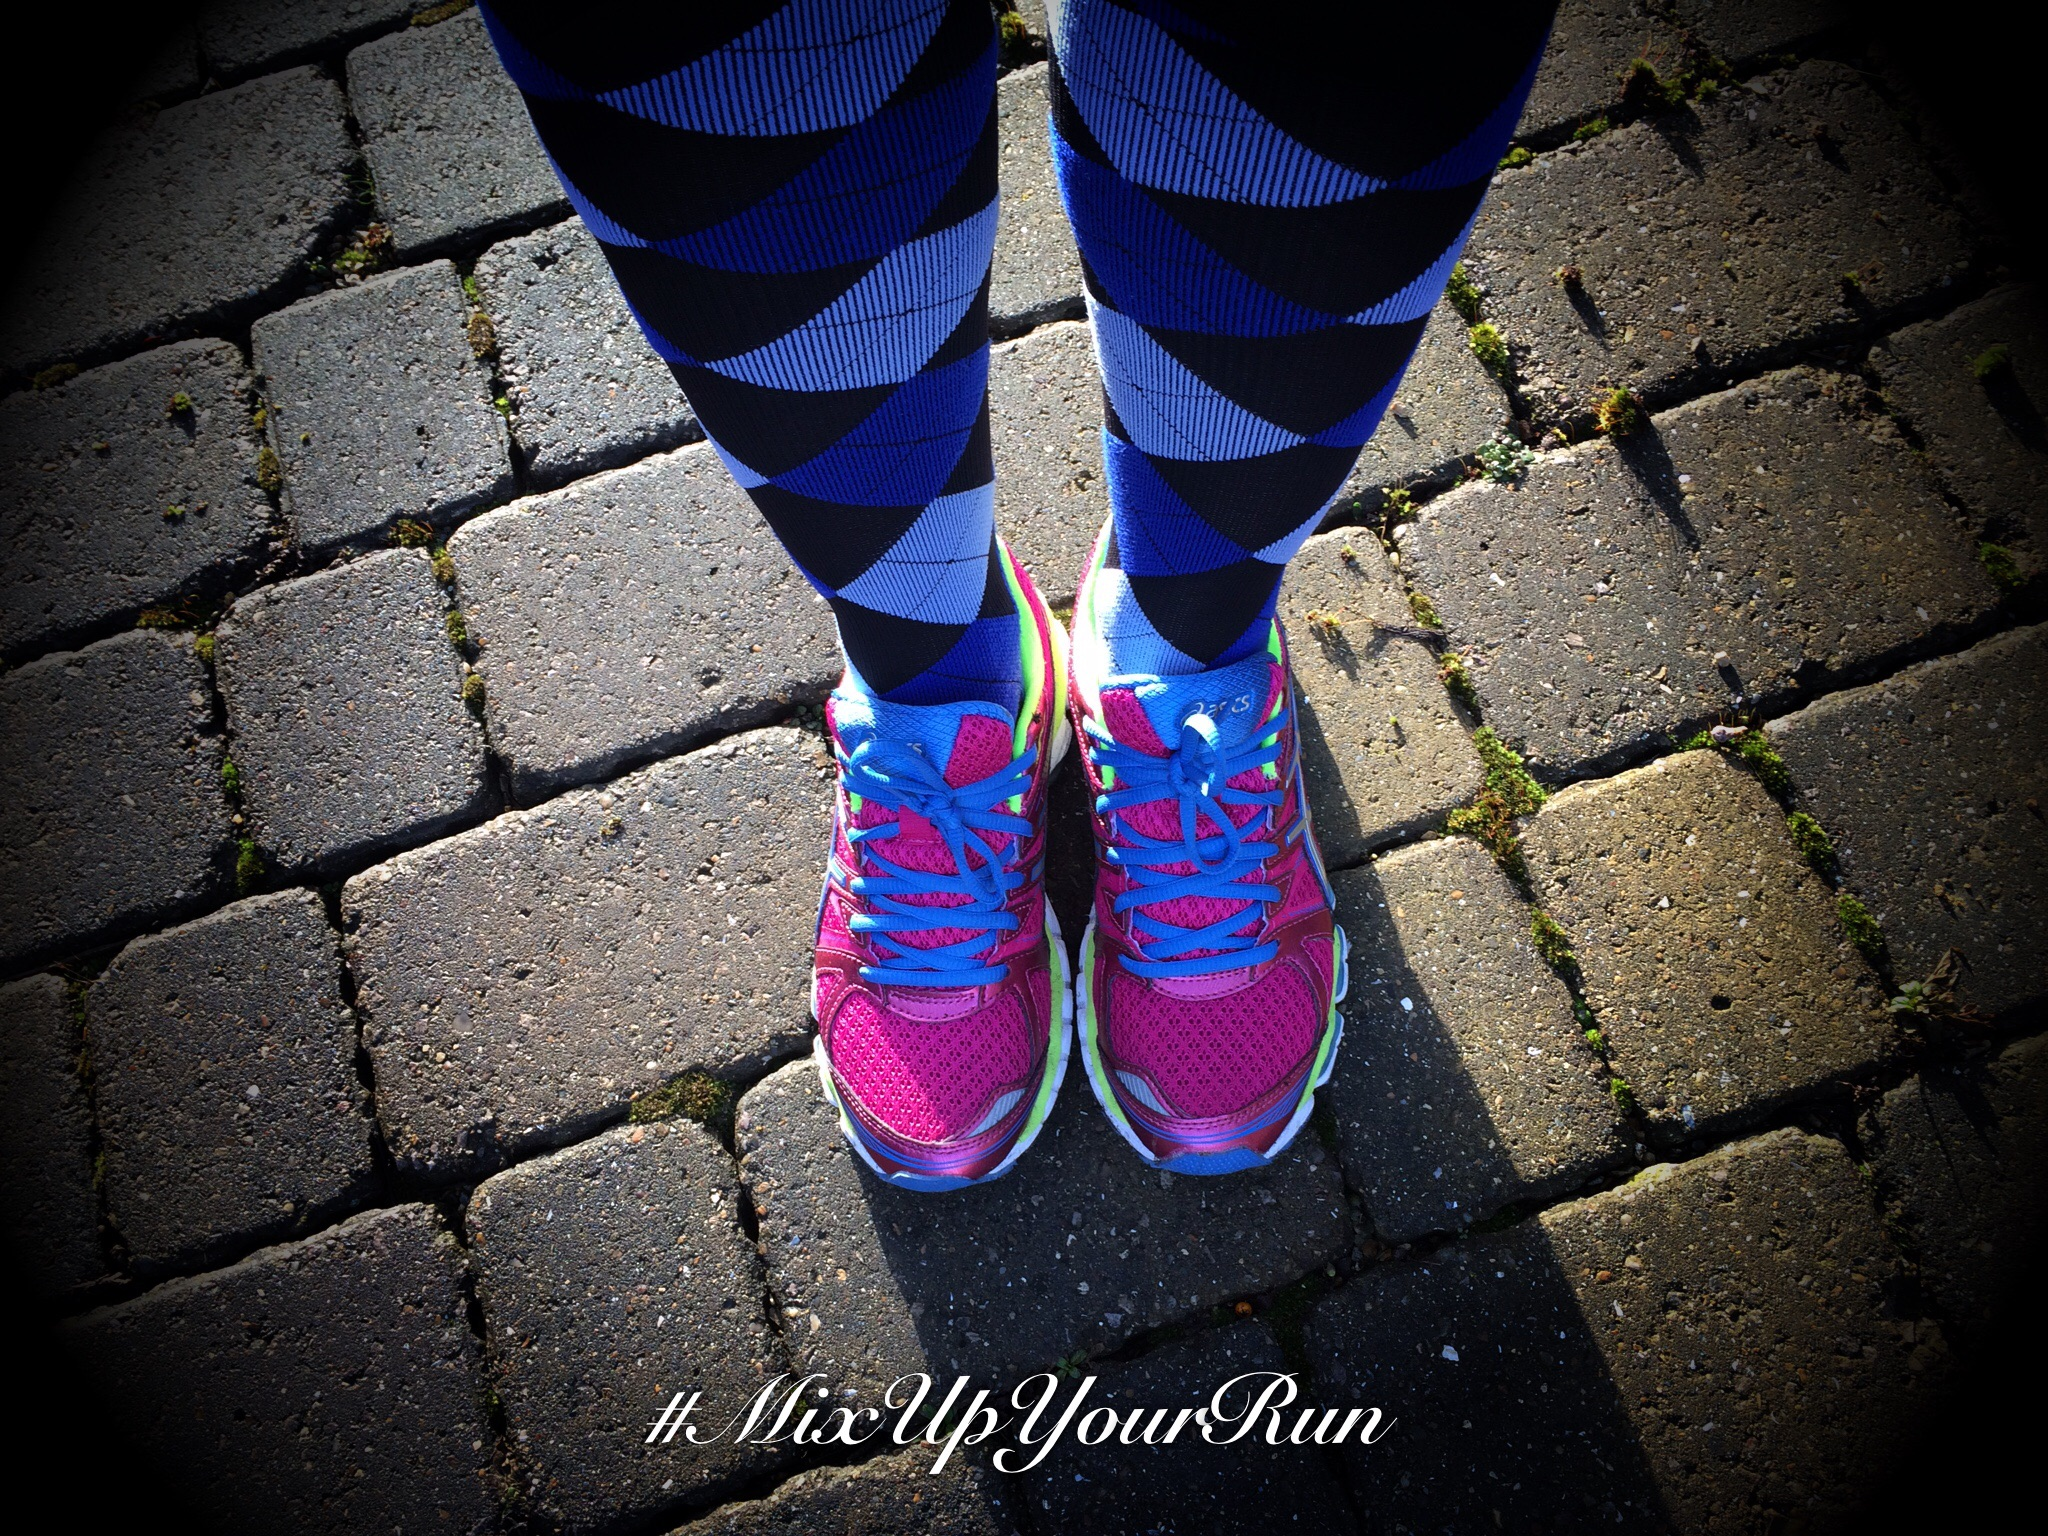 Run long #MixUpYourRun